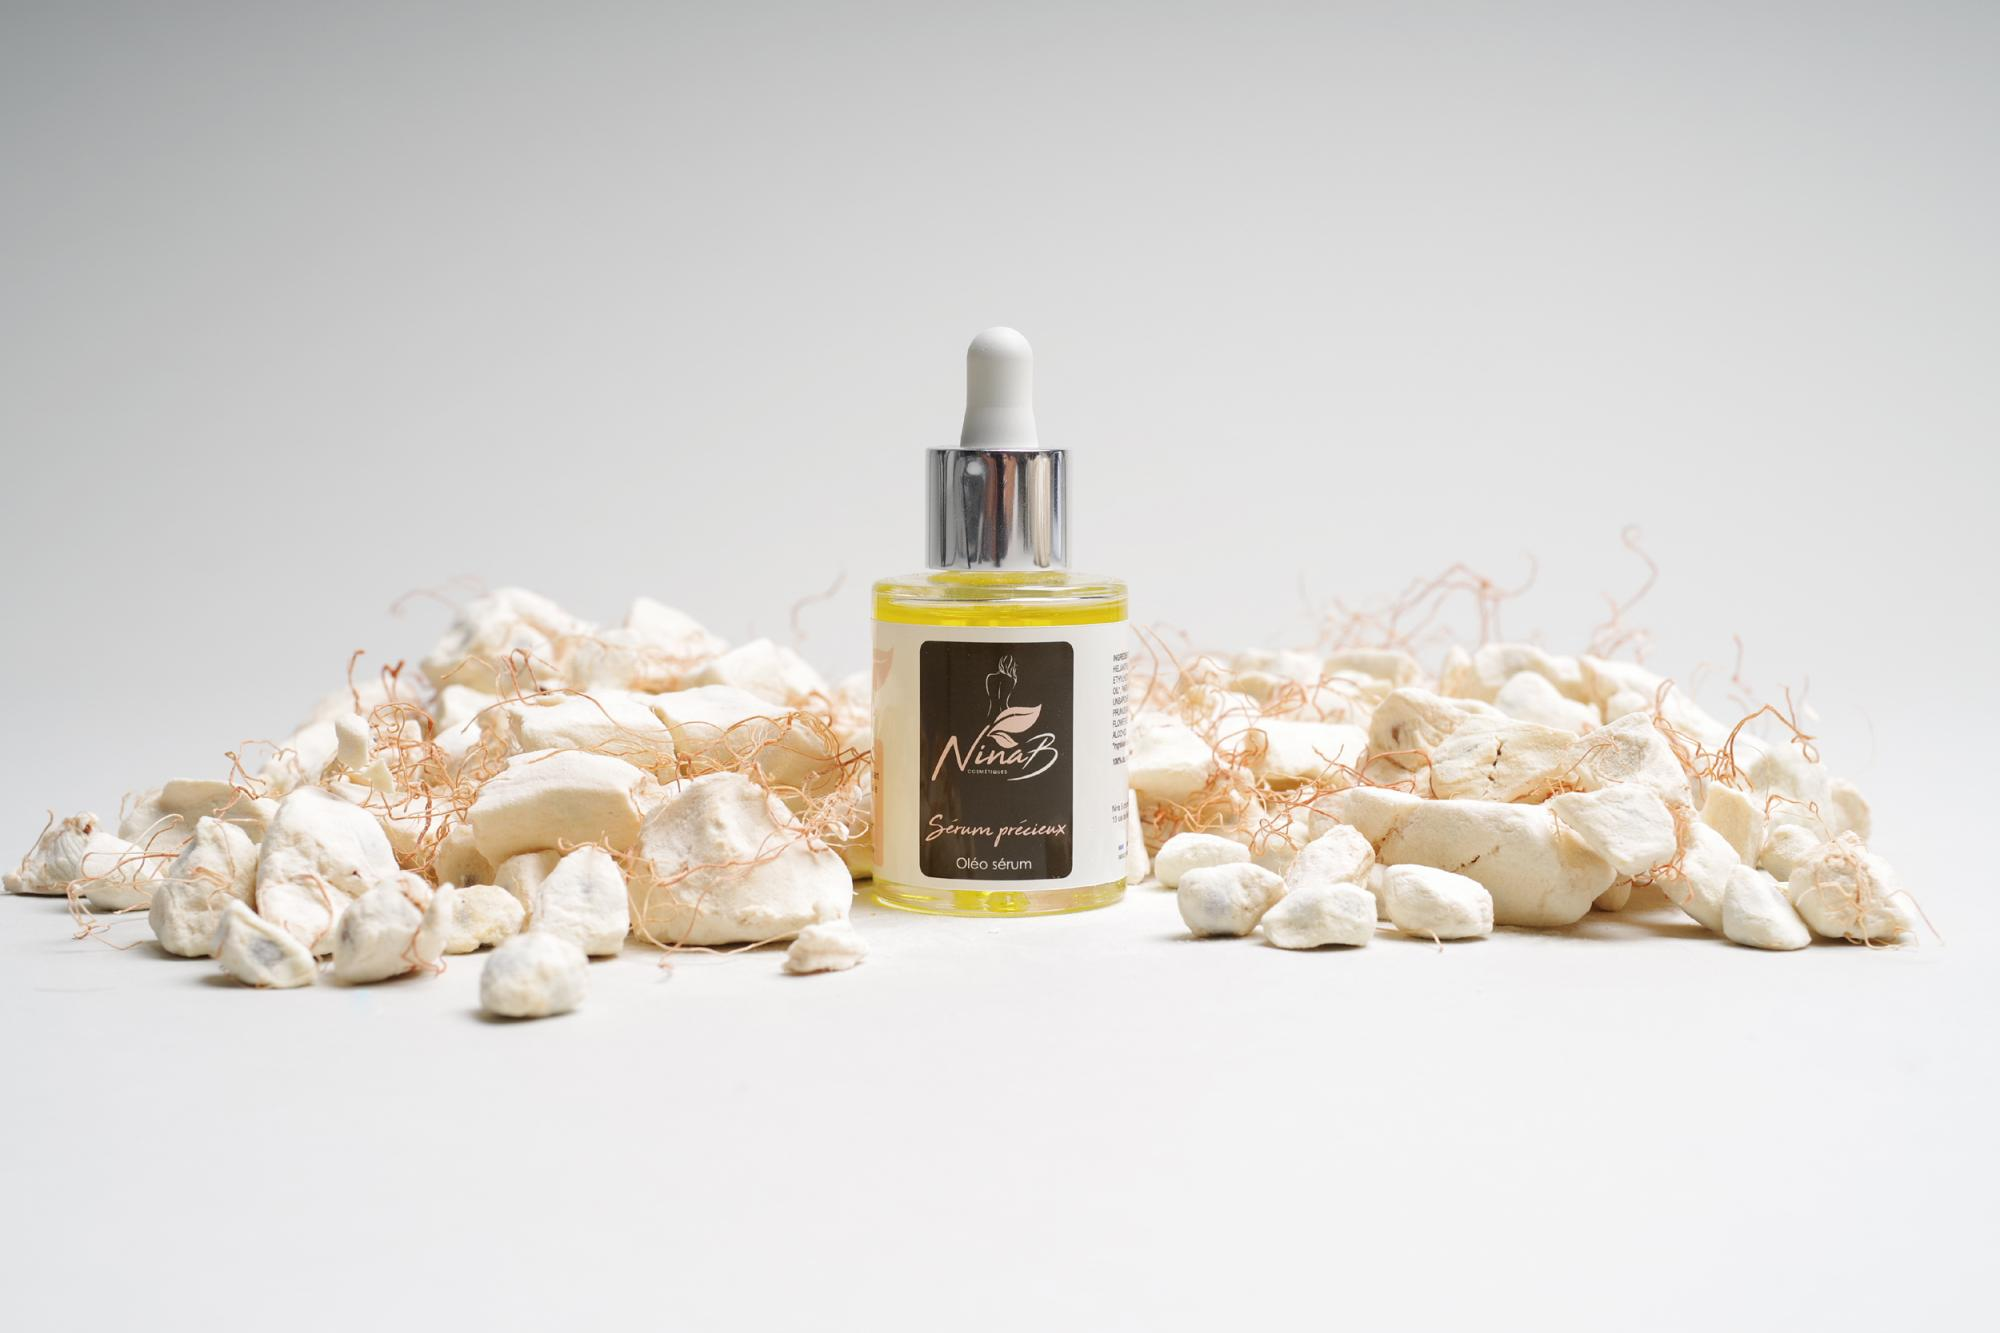 Precious Serum - Anti-Spot Night Radiance - Natural, organic cosmetic product, certified ECOCERT COSMOS ORGANIC